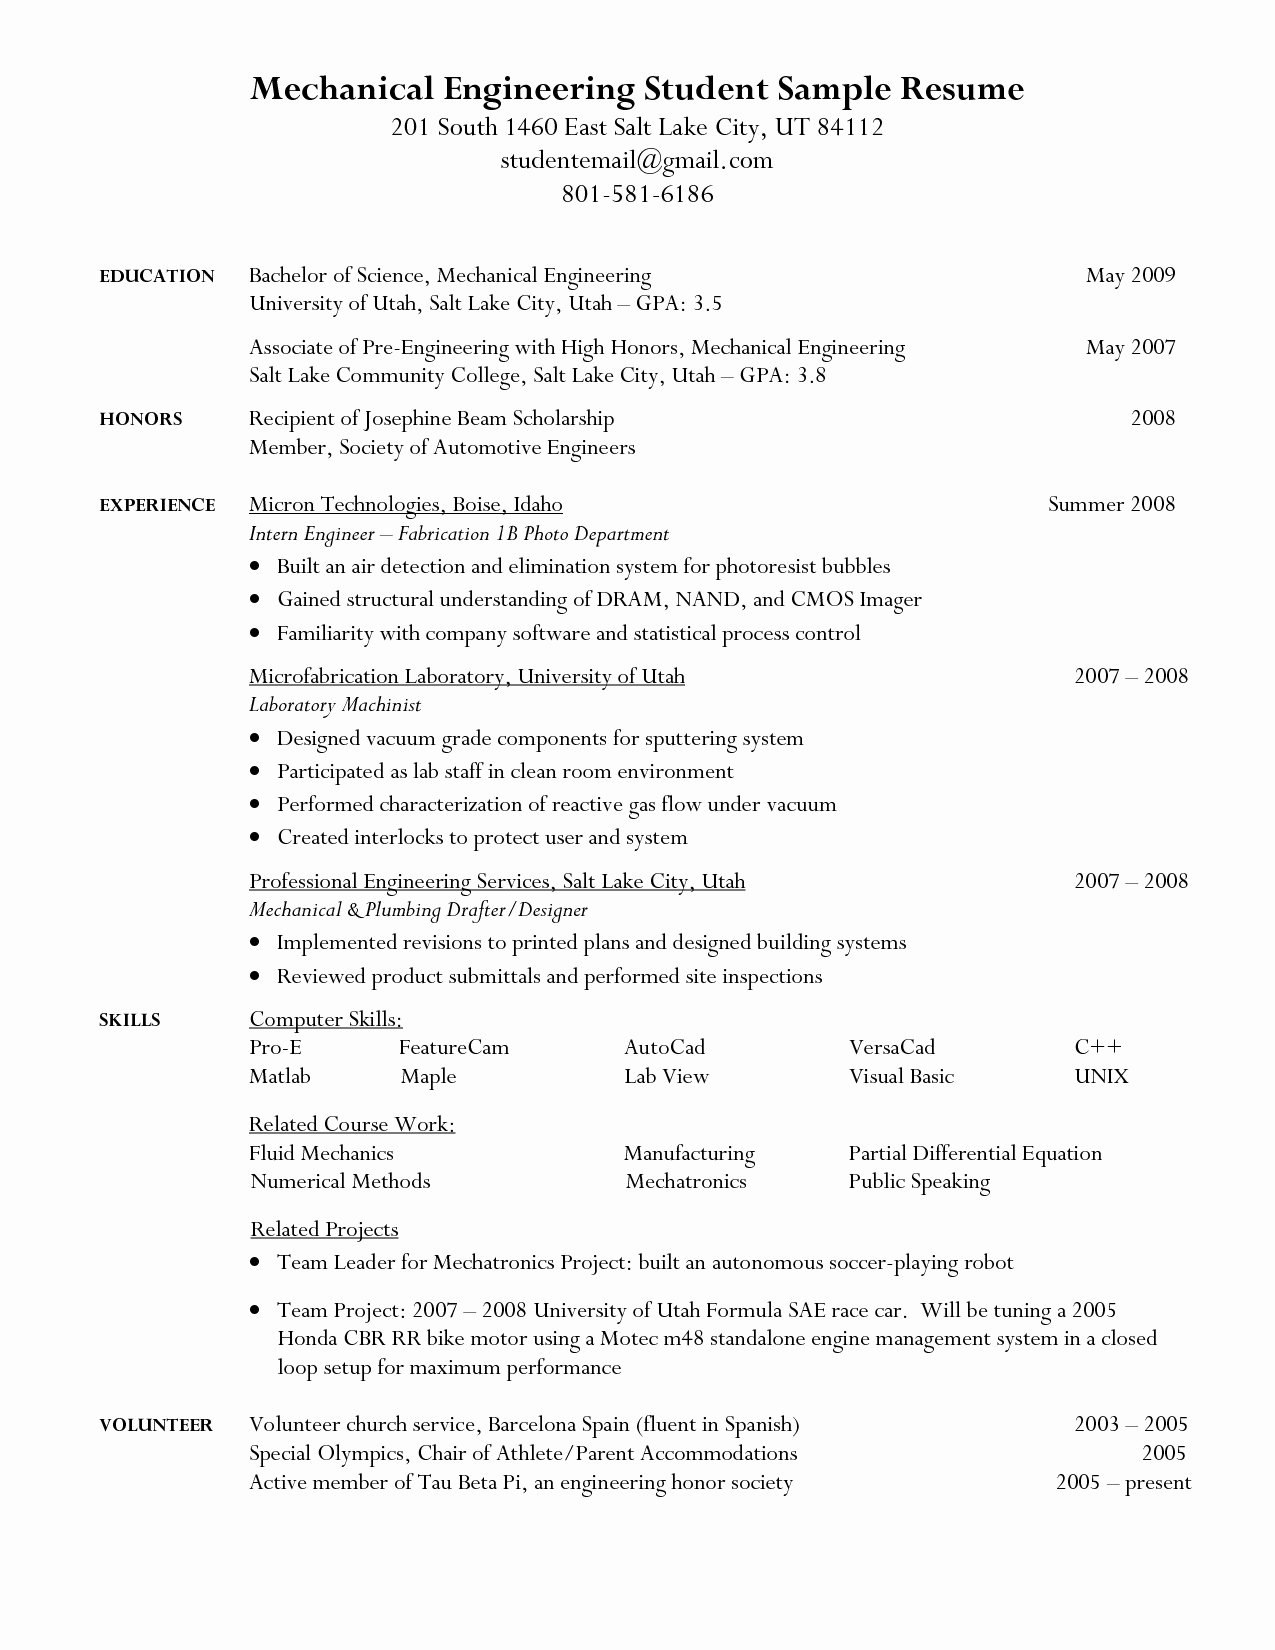 Mechanical Engineering Resume Examples Luxury Engineering Student Resume Google Search